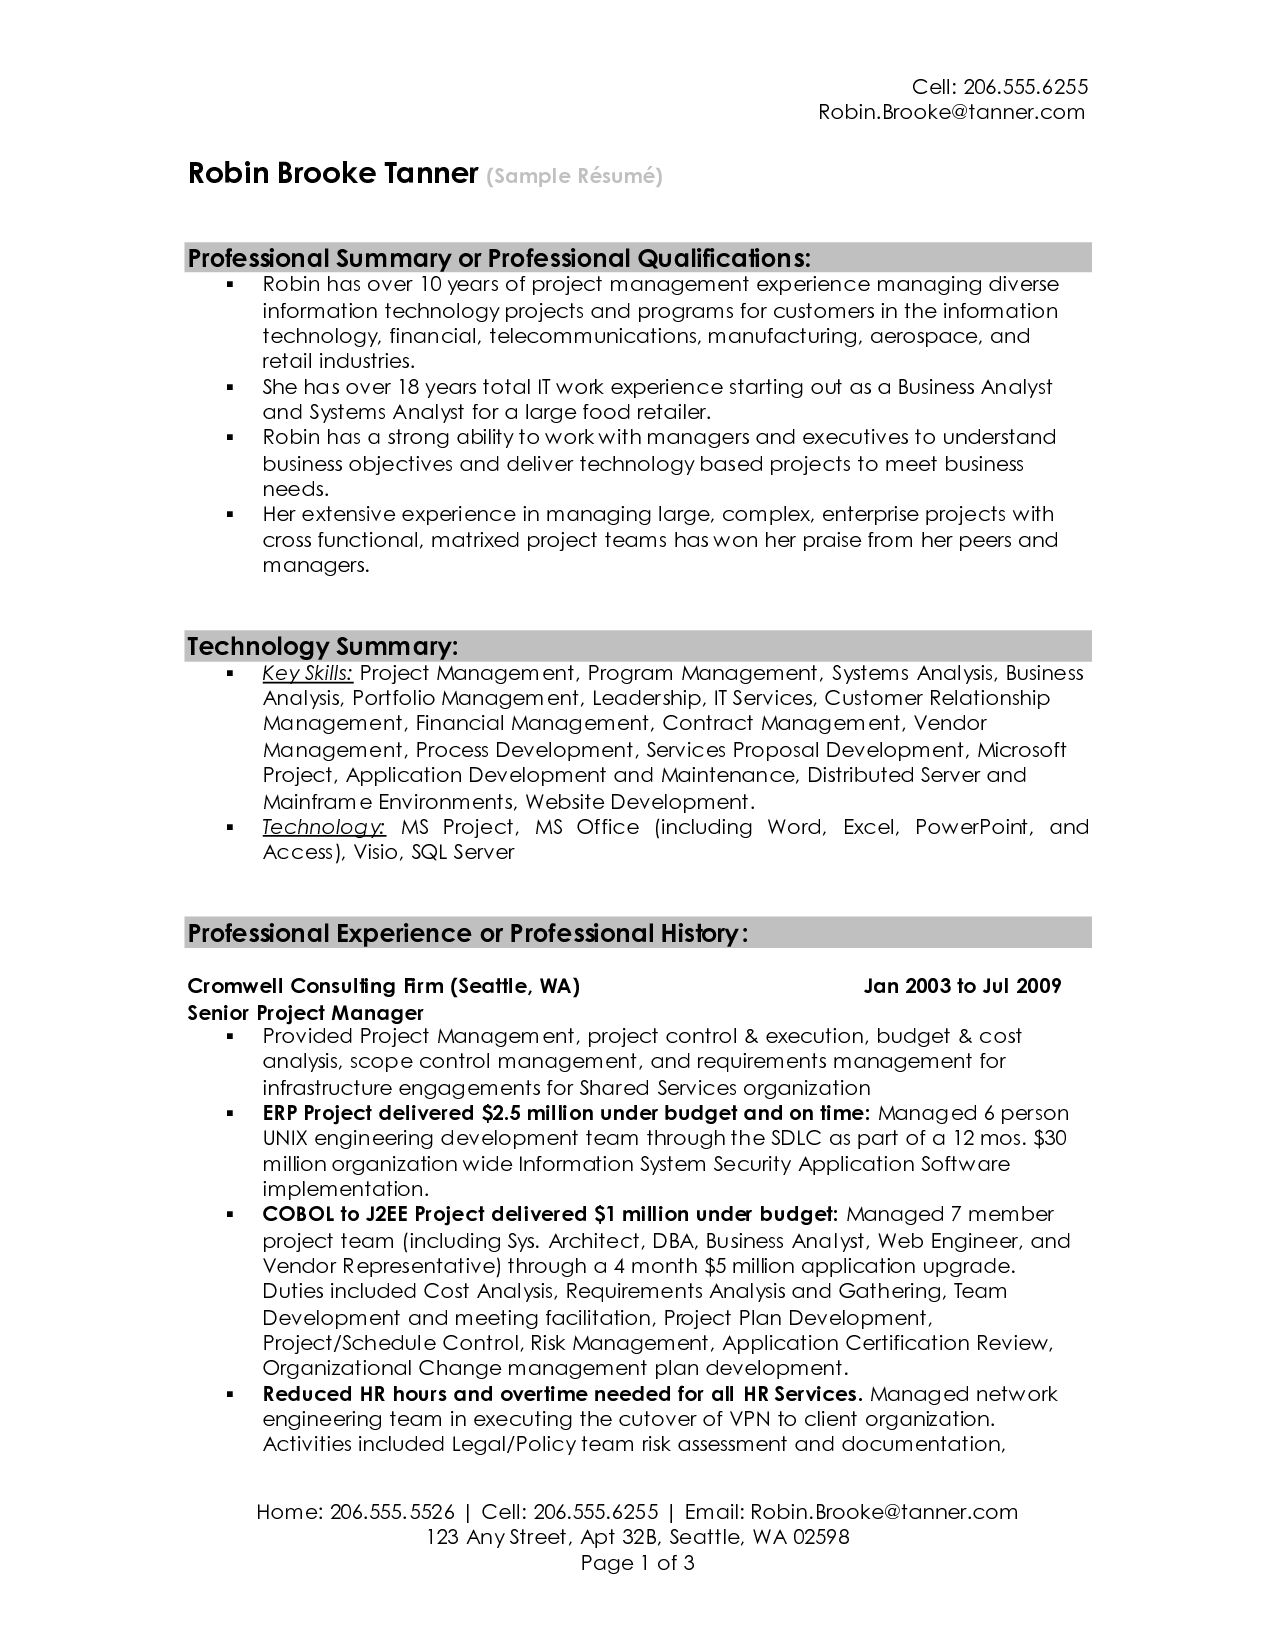 Charming Professional Summary Resume Examples Professional Resume Summary Examples  77e7fb28f  Resume Examples Summary